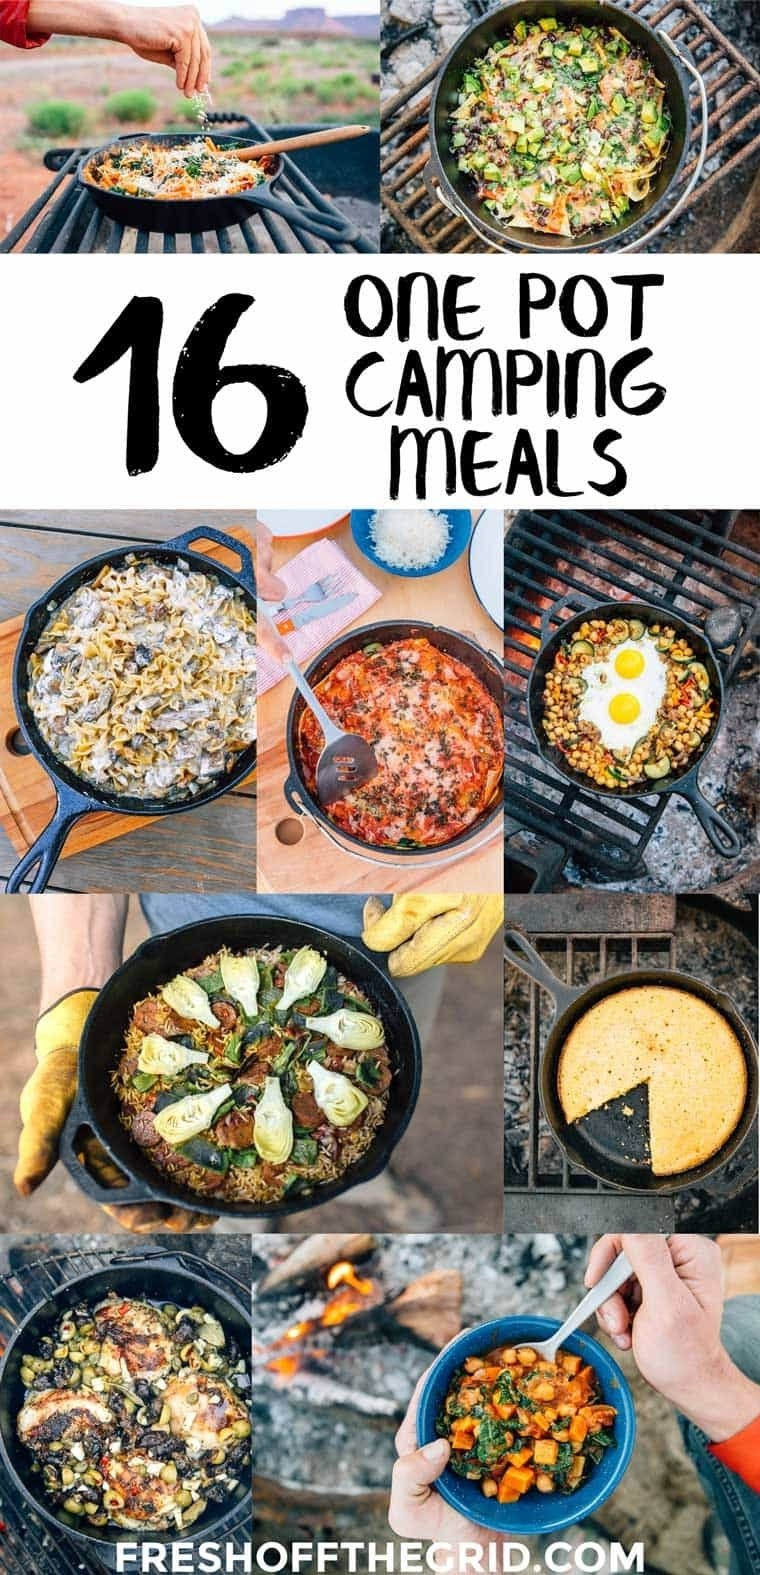 10 Most Recommended Camping Dinner Ideas For Large Groups 16 one pot camping meals fresh off the grid 2021